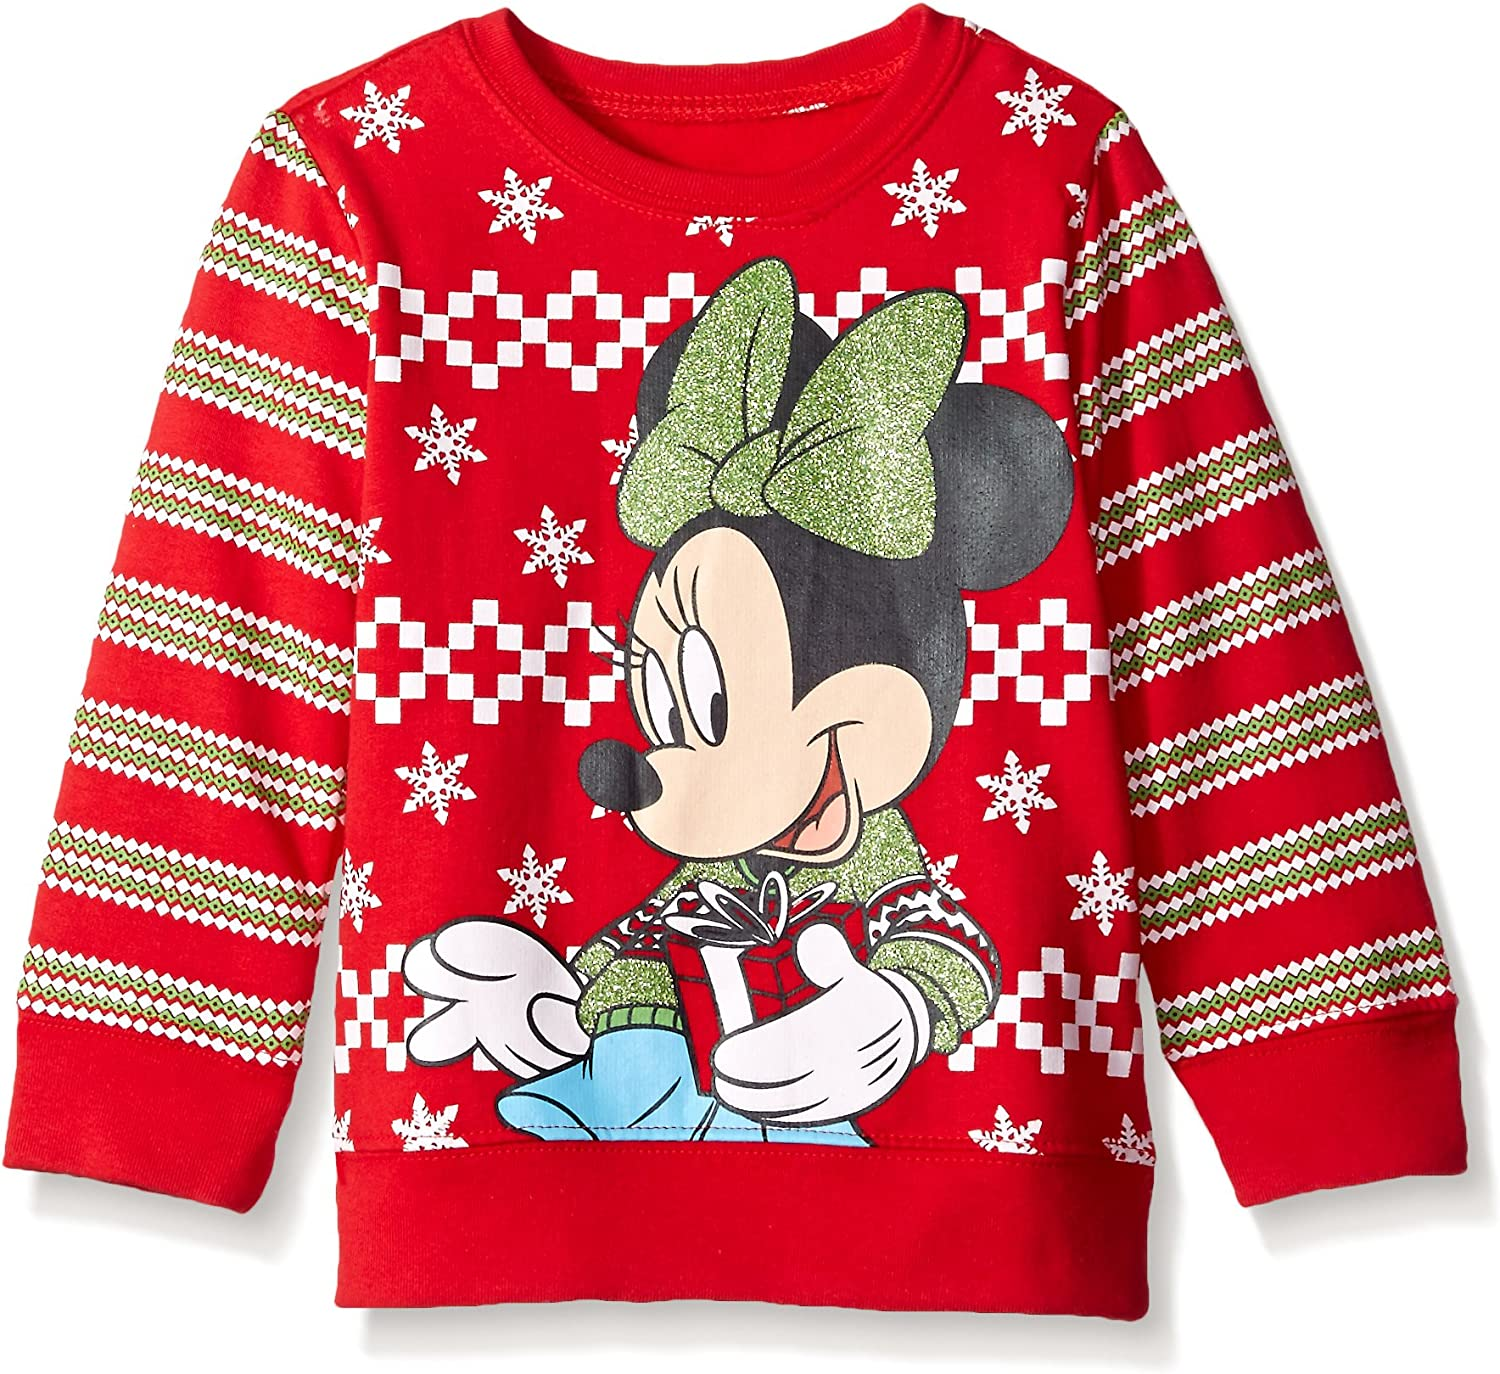 Disney Girls' Minnie Mouse With Gift Nordic Crew Neck Sweater